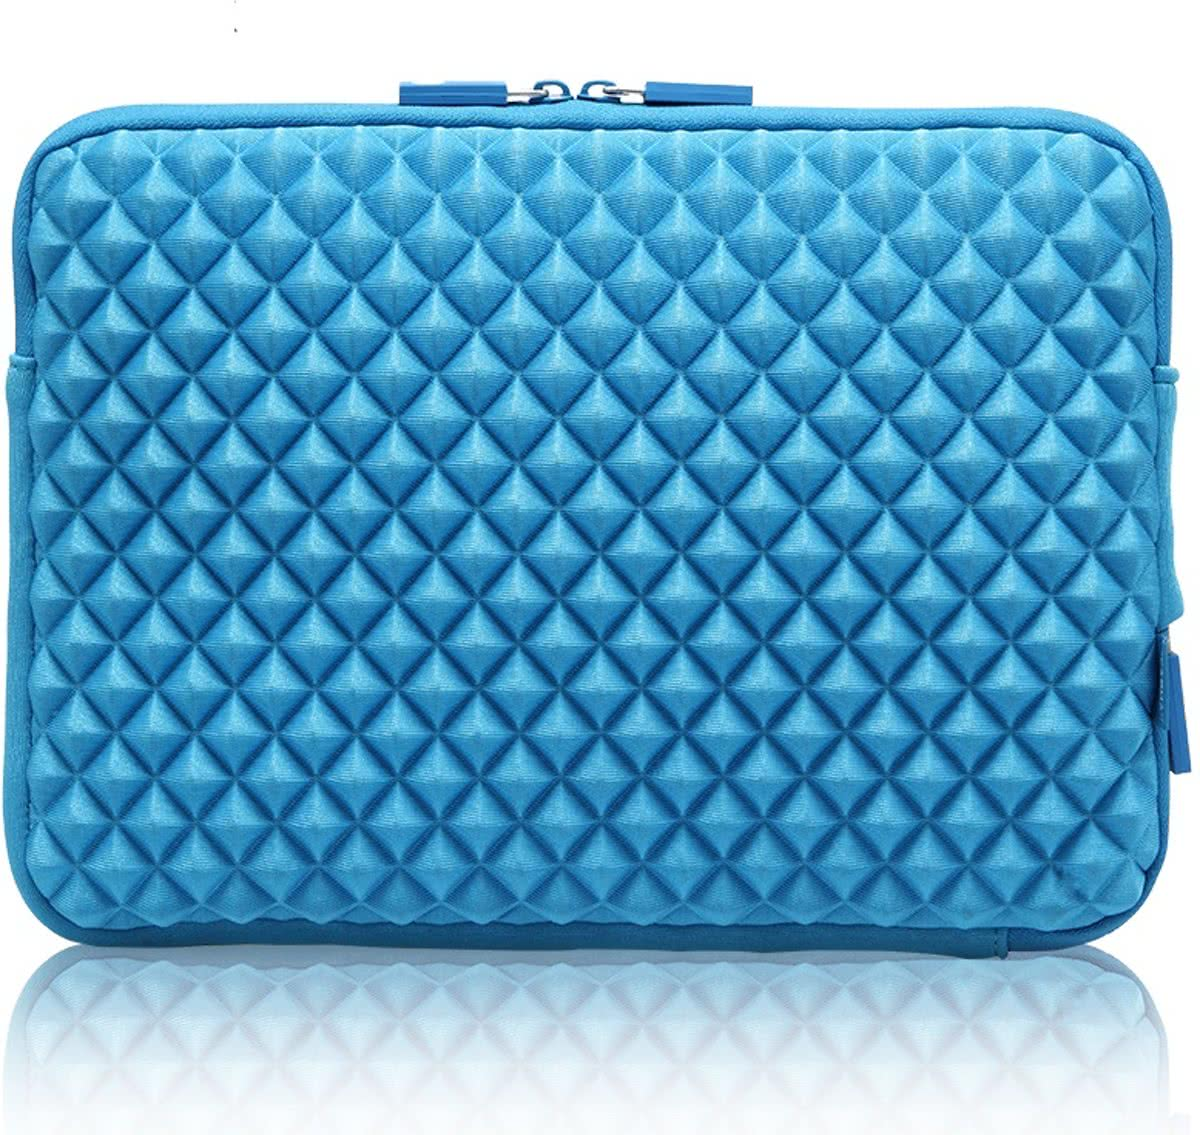 Diamond Sleeve Laptop / Tablet 12 inch - Blauw